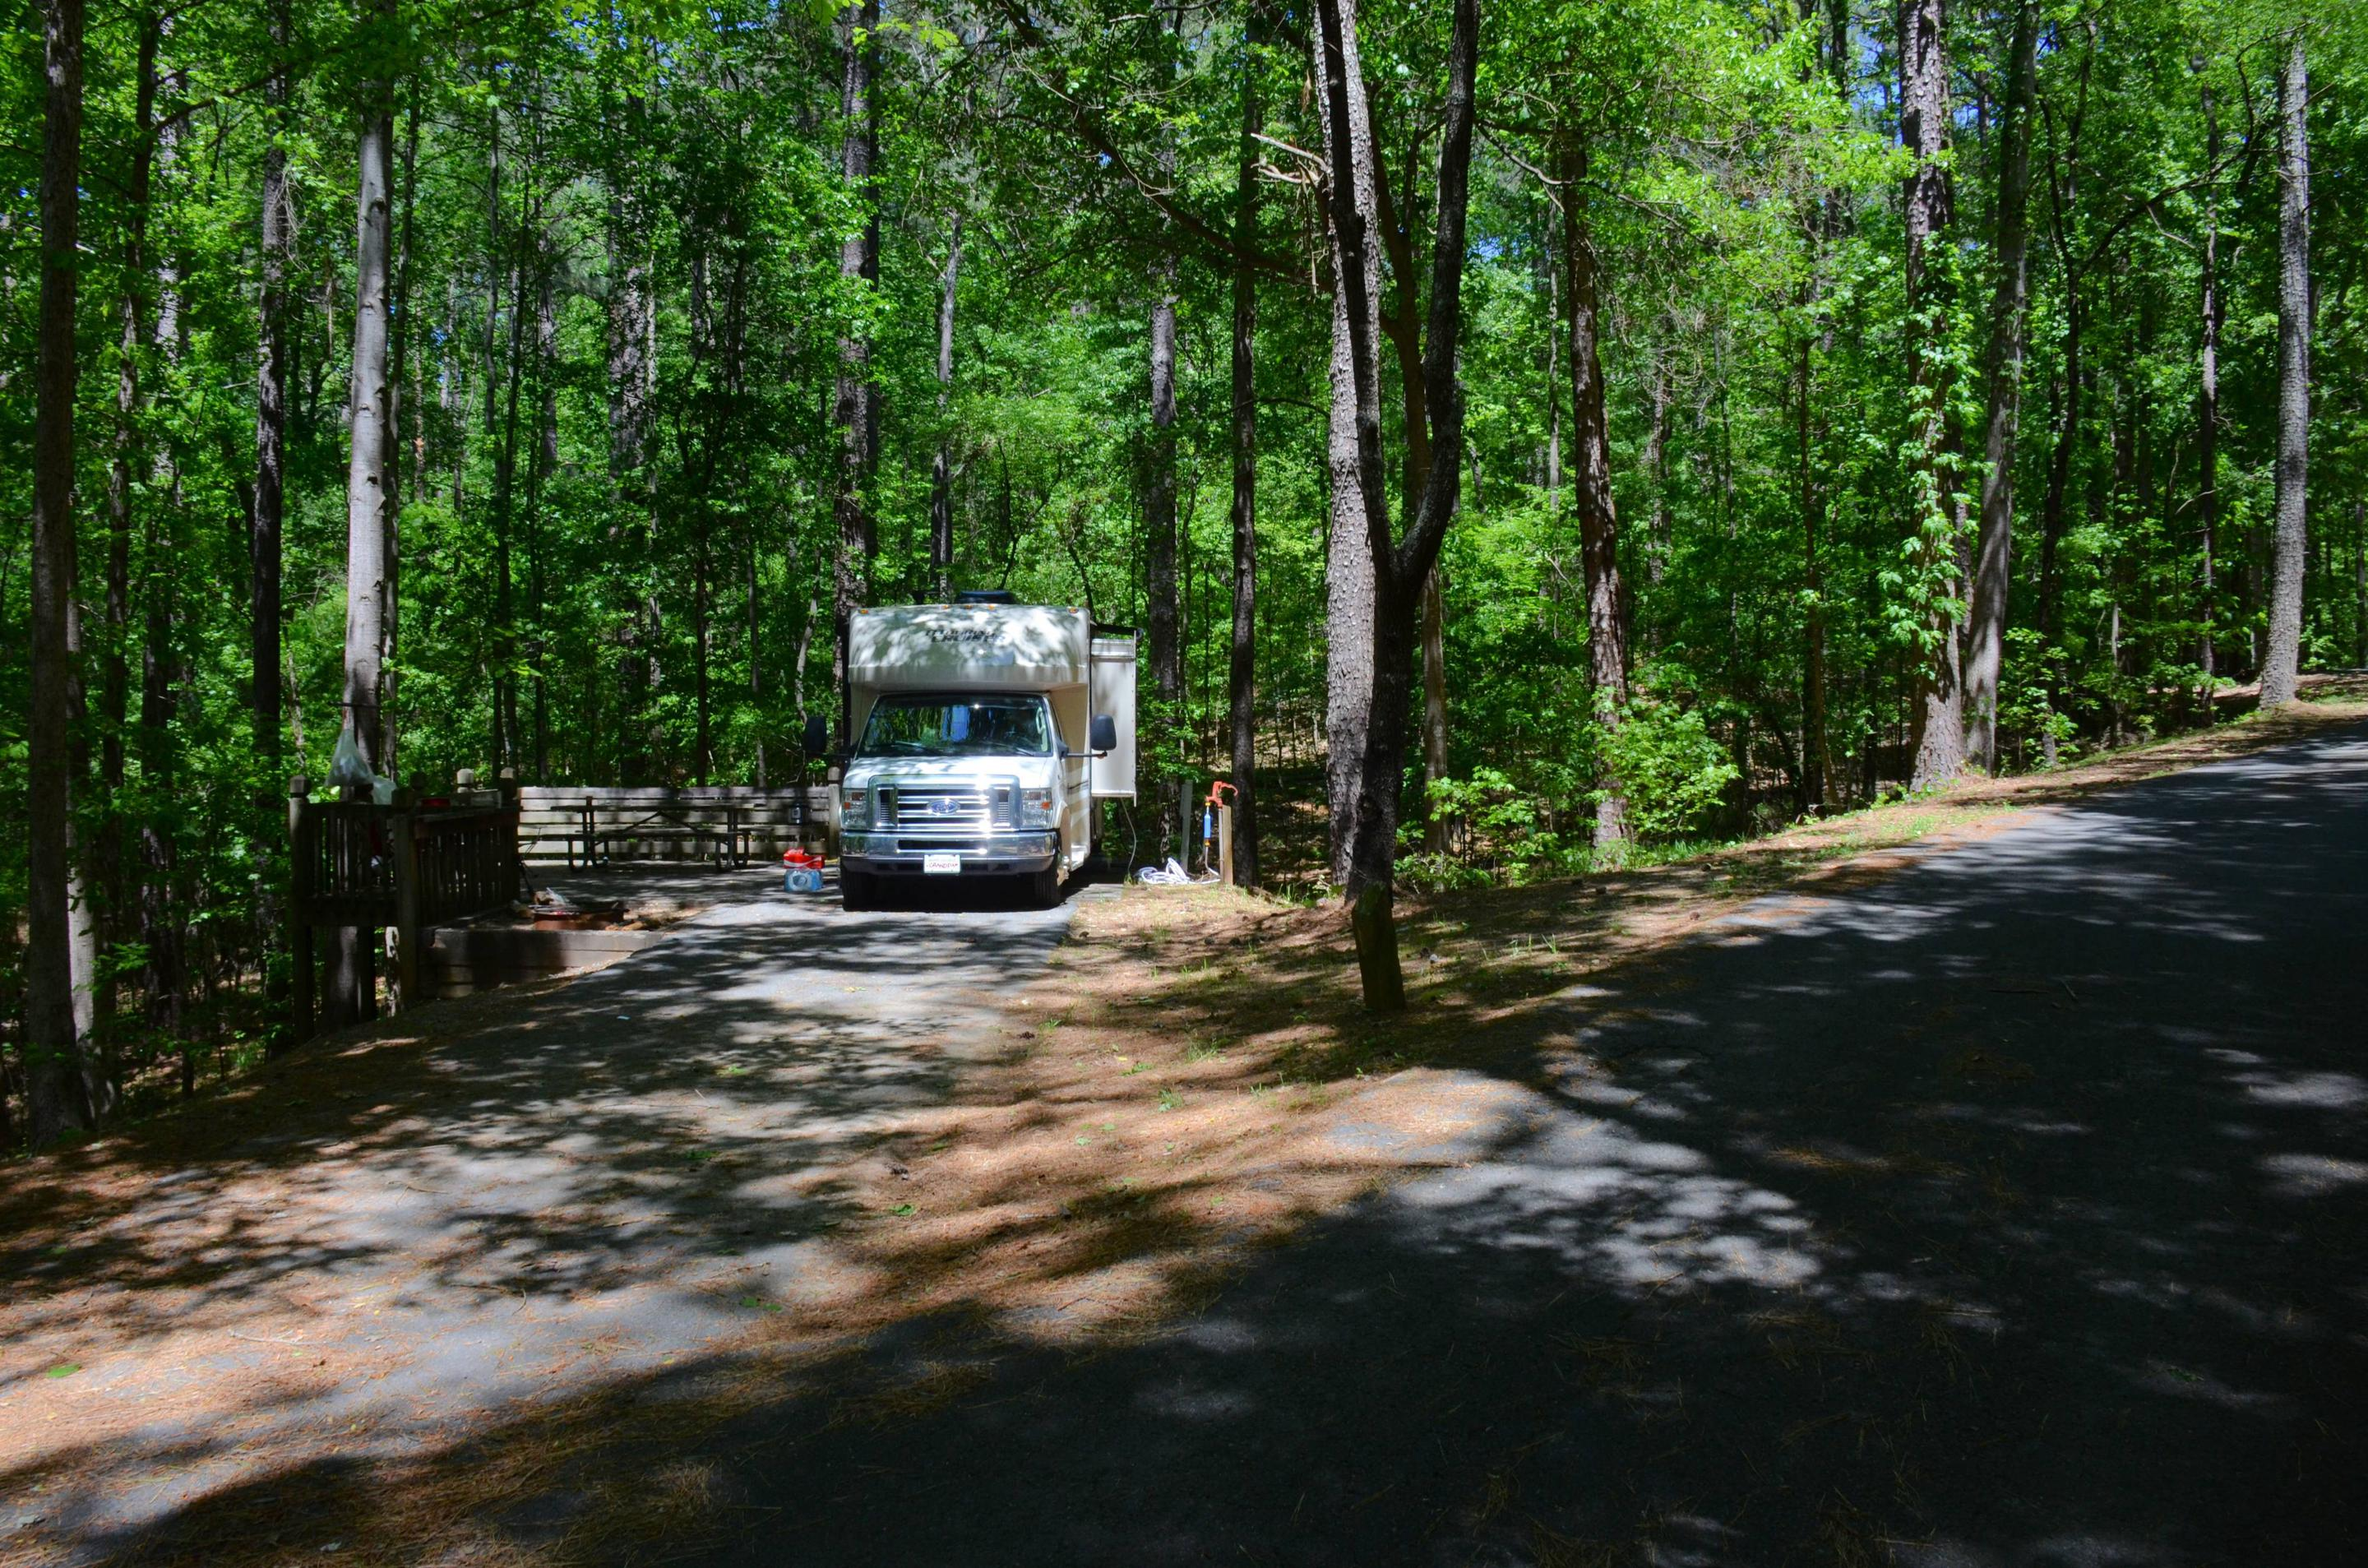 Driveway entrance angle/slope, utilities-side clearance, awning-side clearance.McKinney Campground, campsite 118.